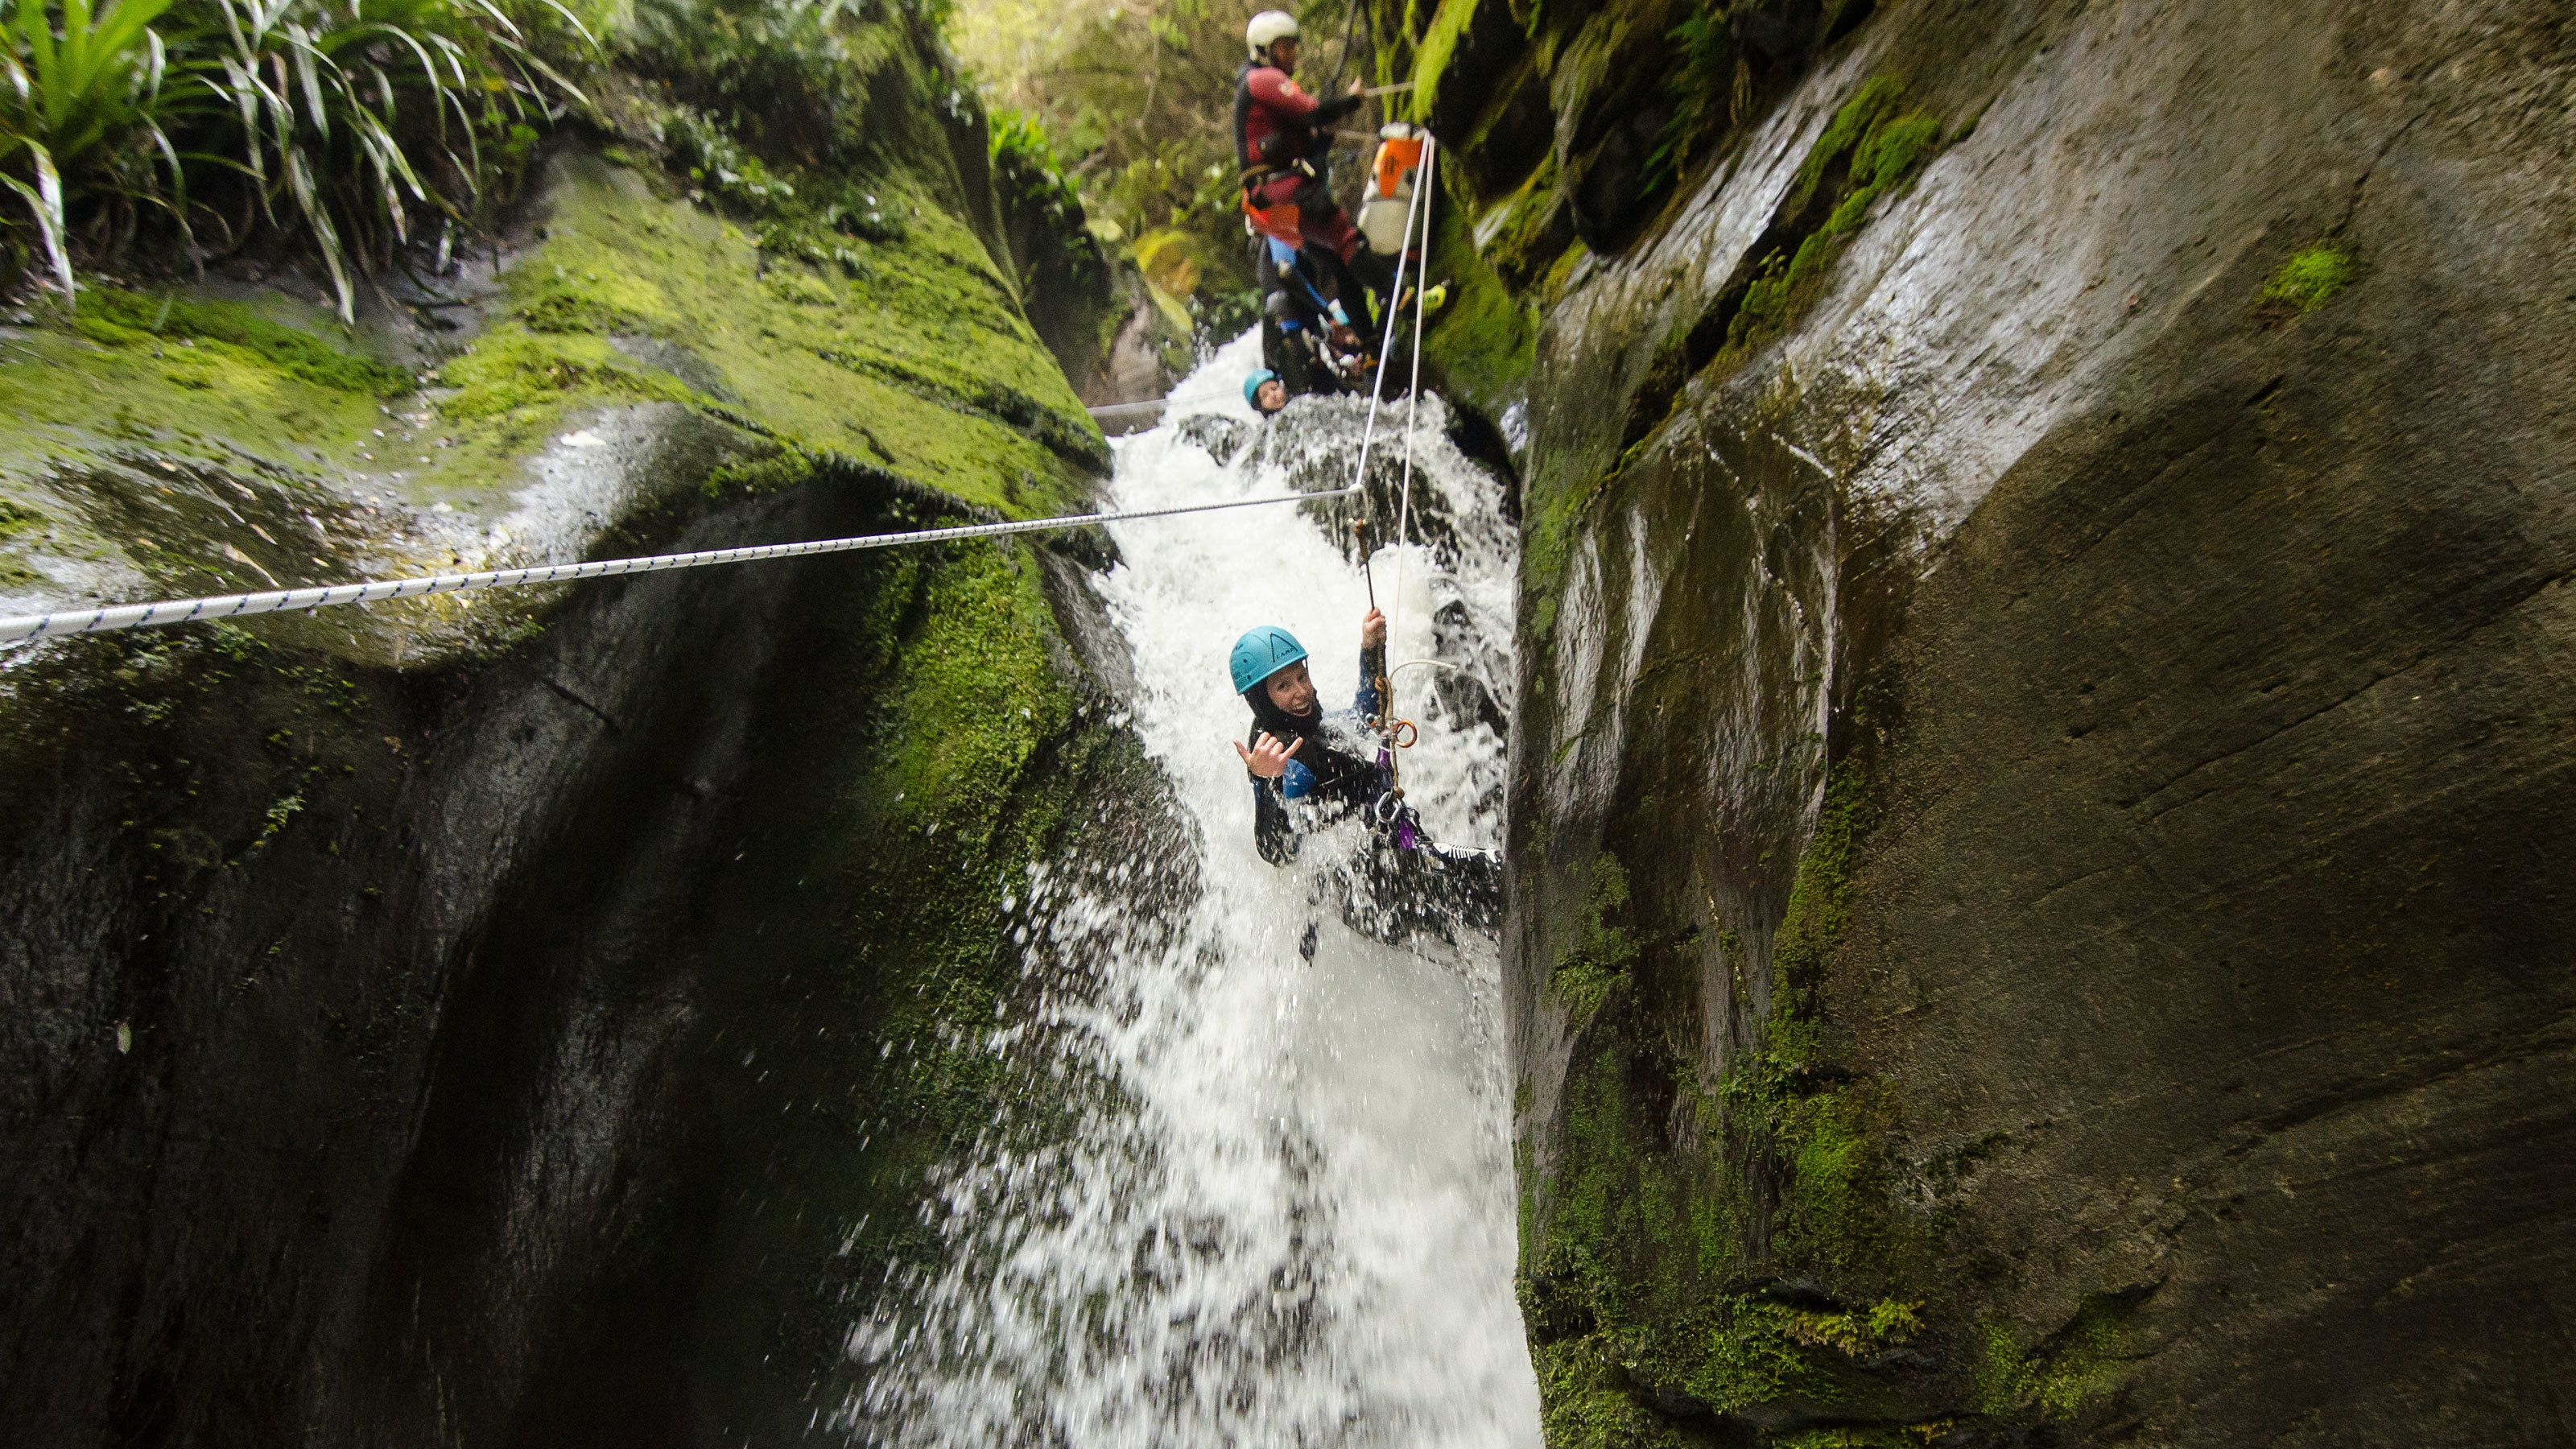 Canyoning in mossy waterway in new zealand